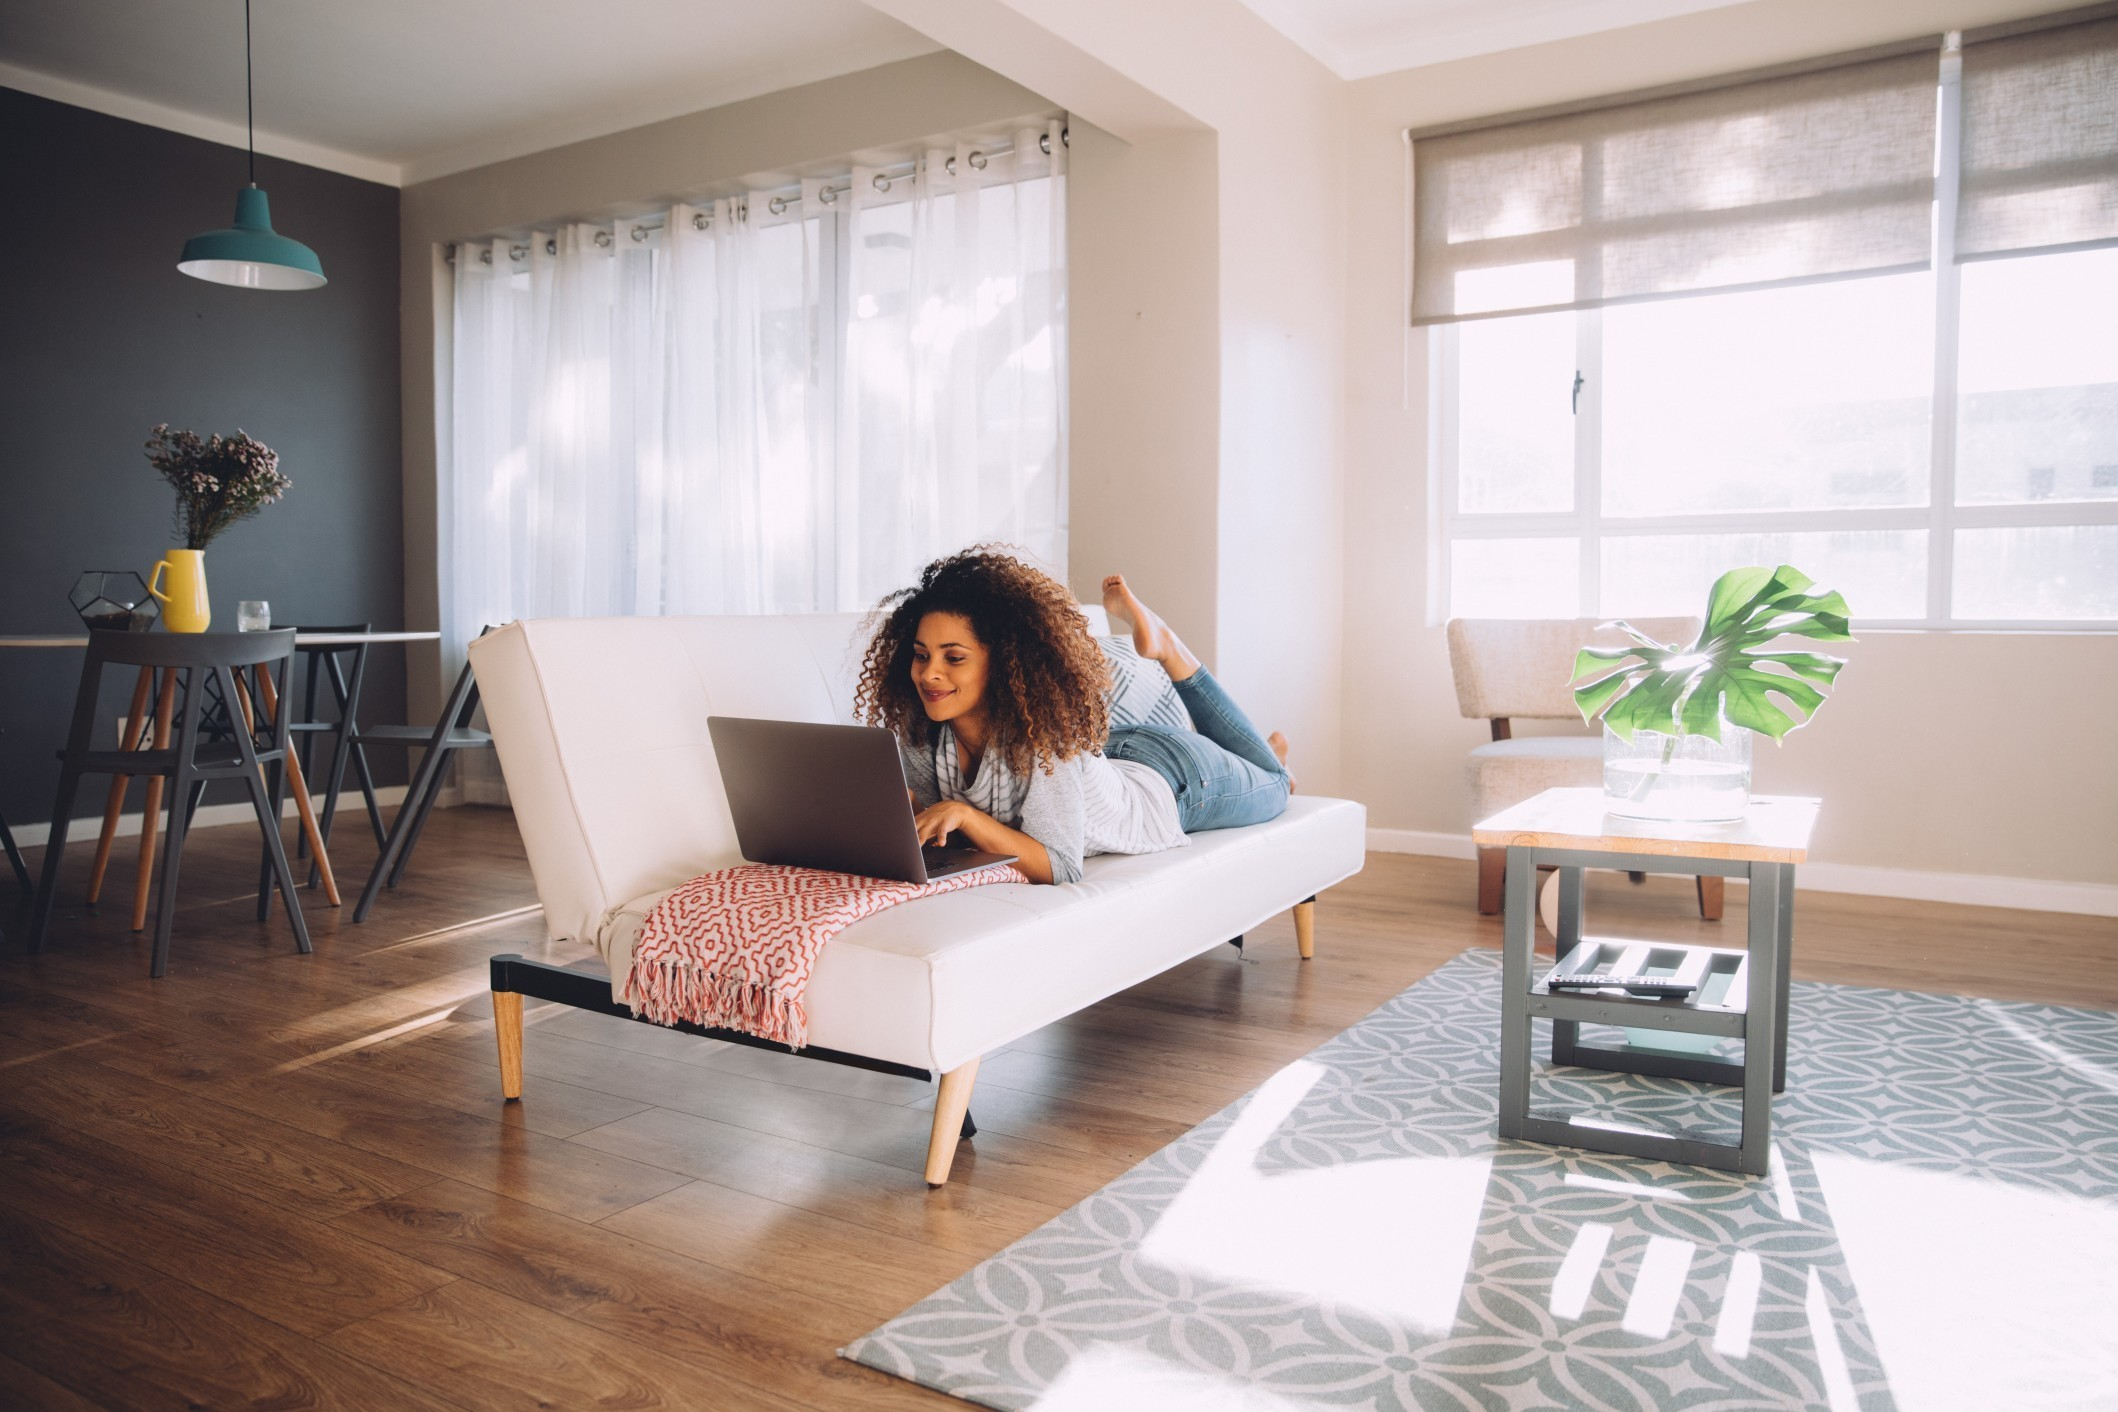 Smart Safety Tips When Living Alone